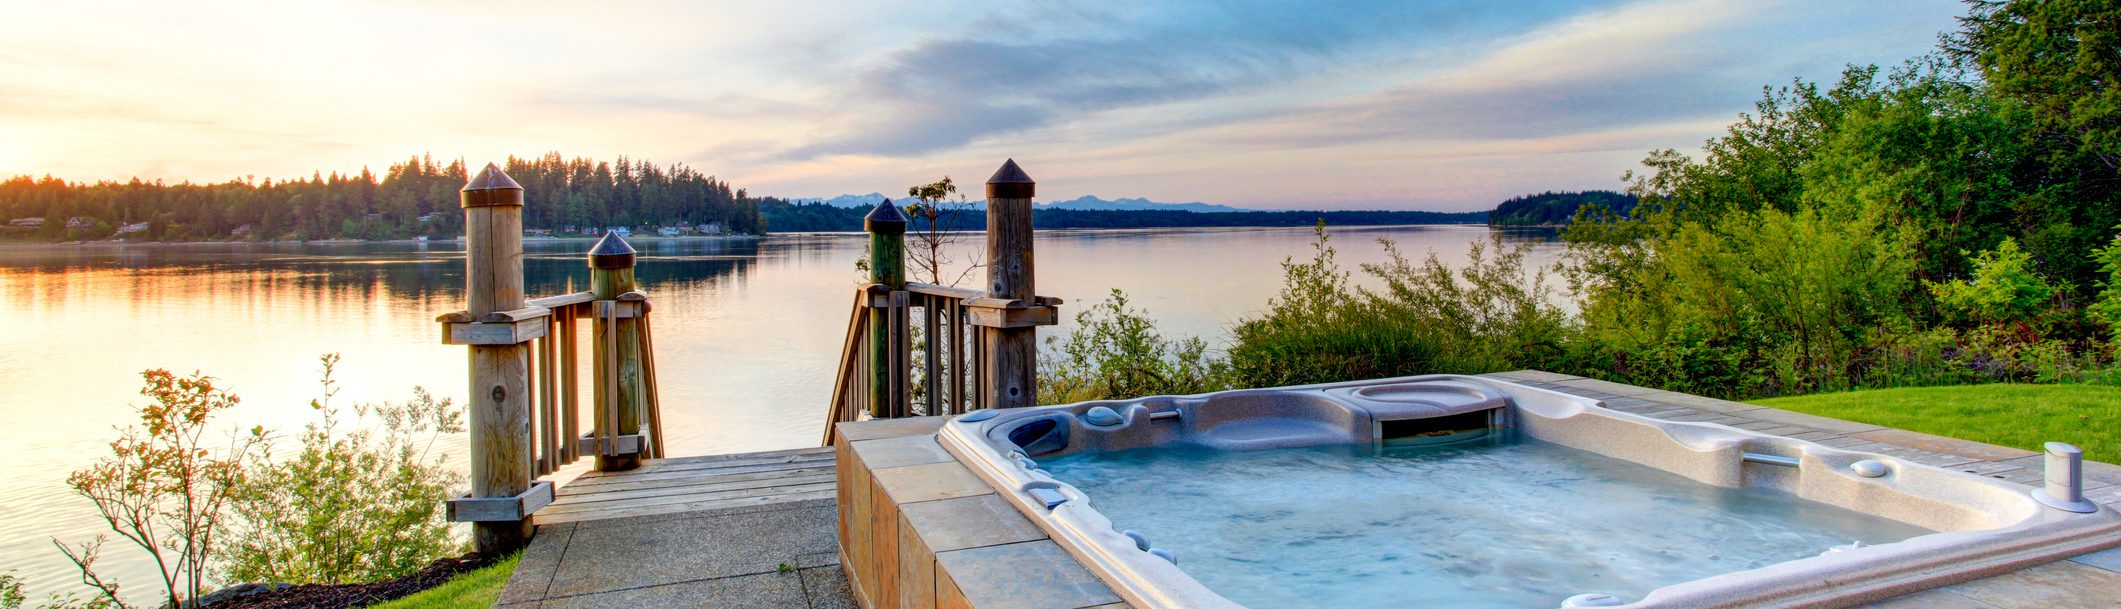 How much does a hot tub spa cost?